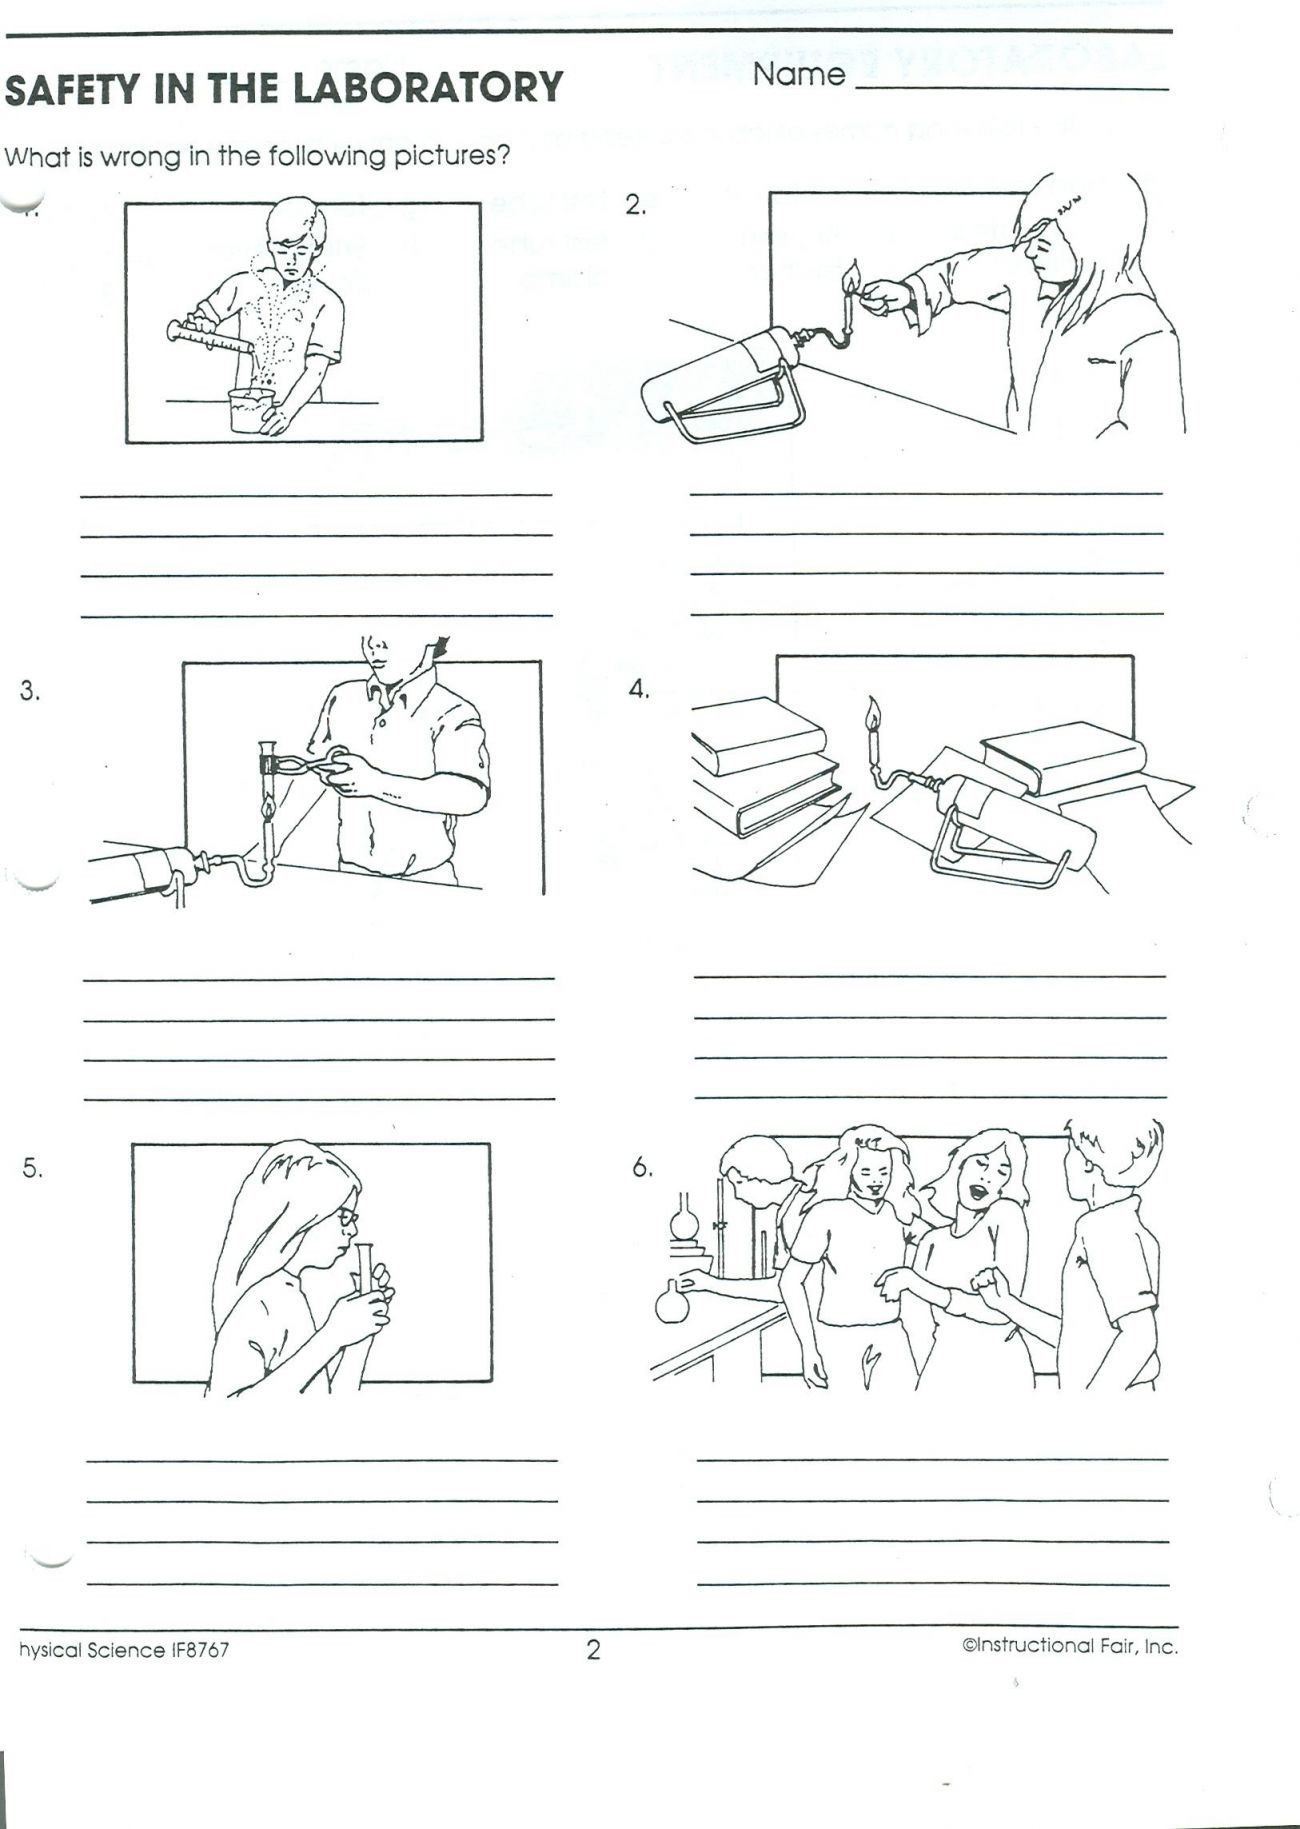 Safety In The Laboratory Worksheet Answers